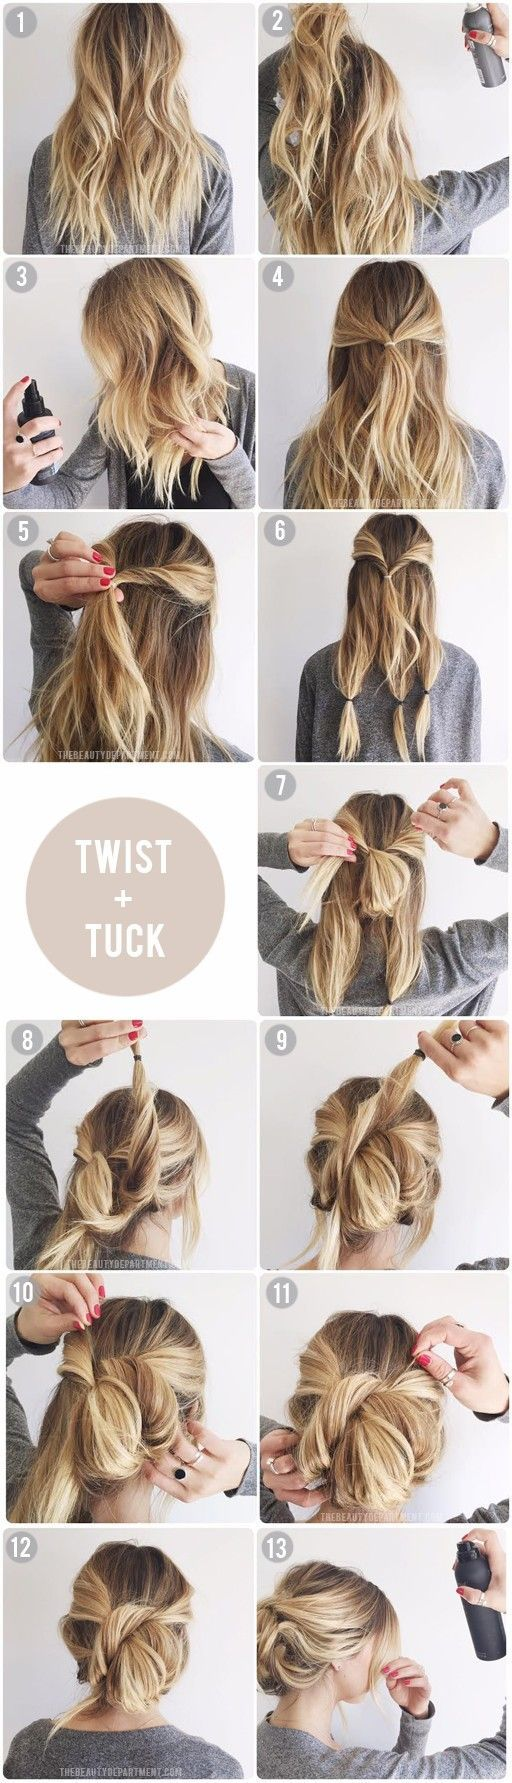 best 25+ easy updo ideas on pinterest | easy chignon, simple updo